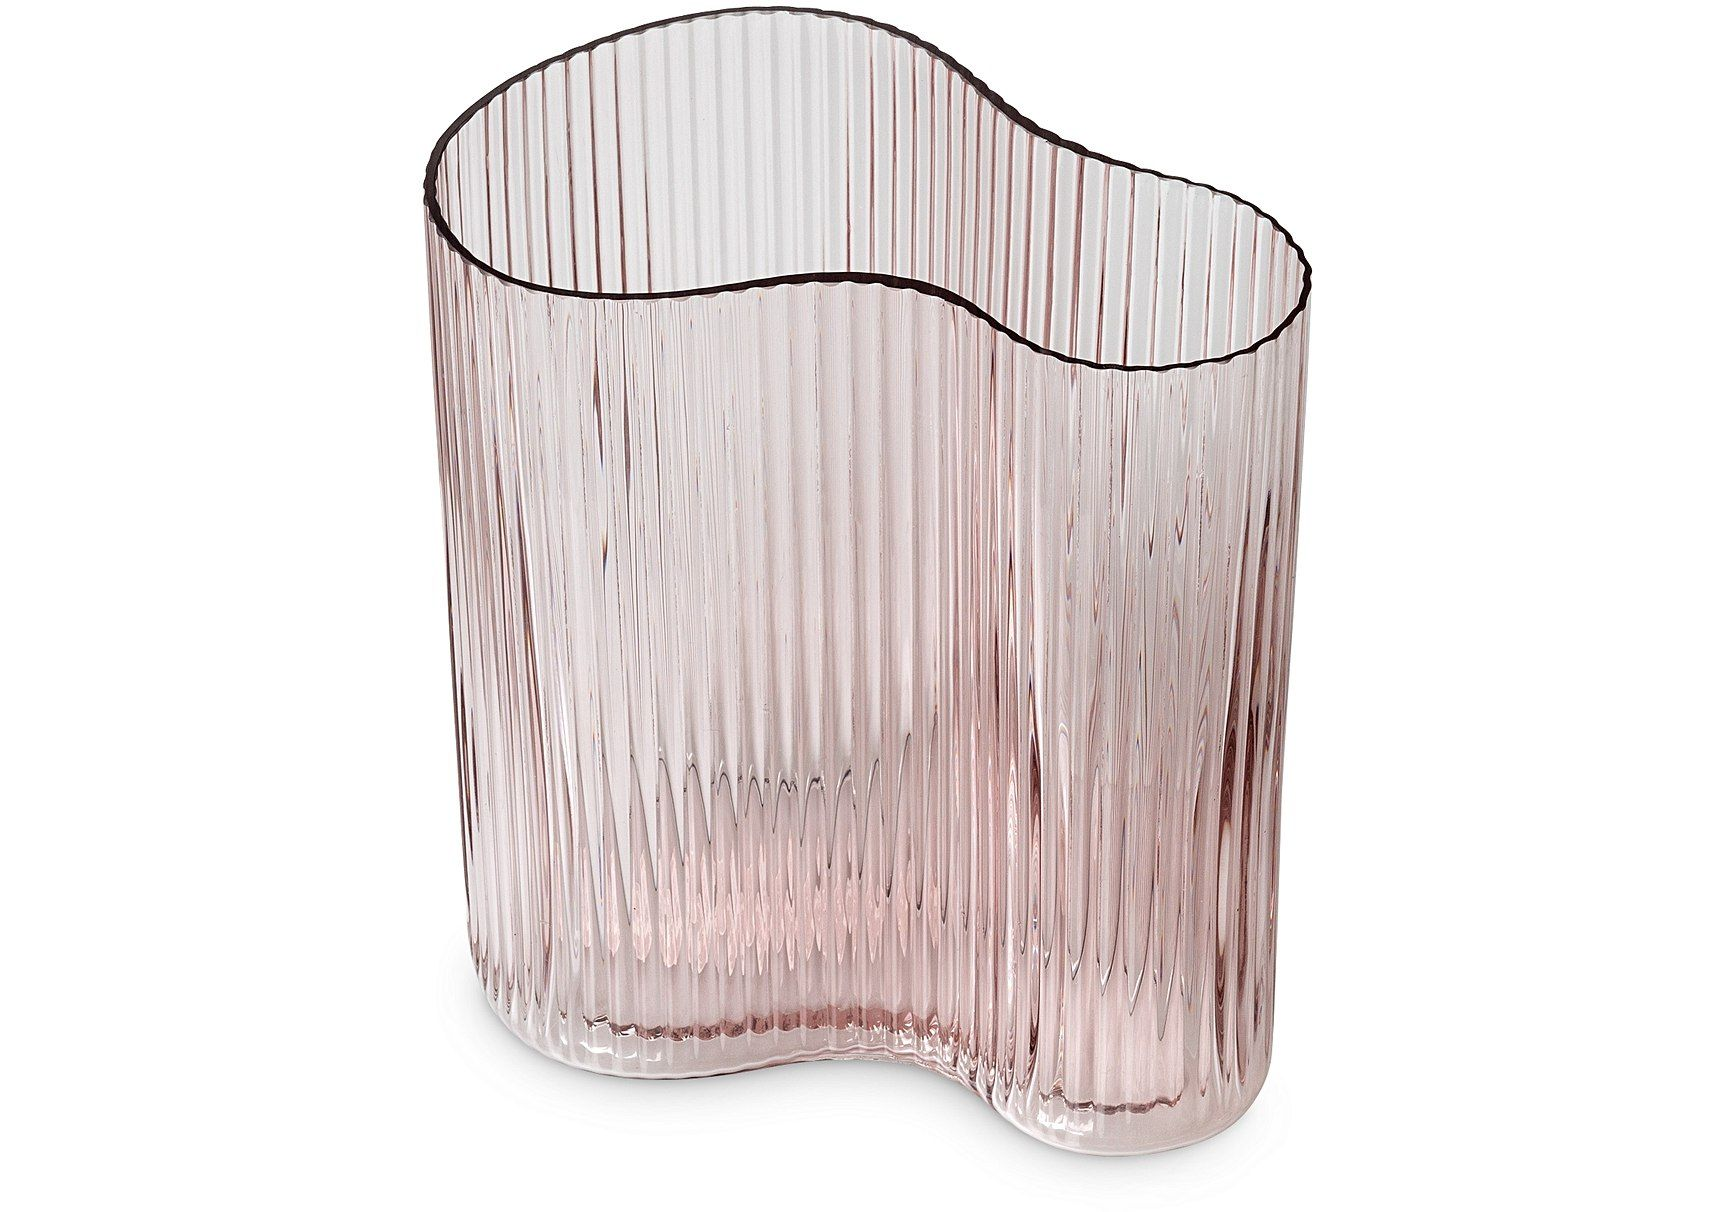 Petitine Short Pink Glass Vase, Oliver Bonas